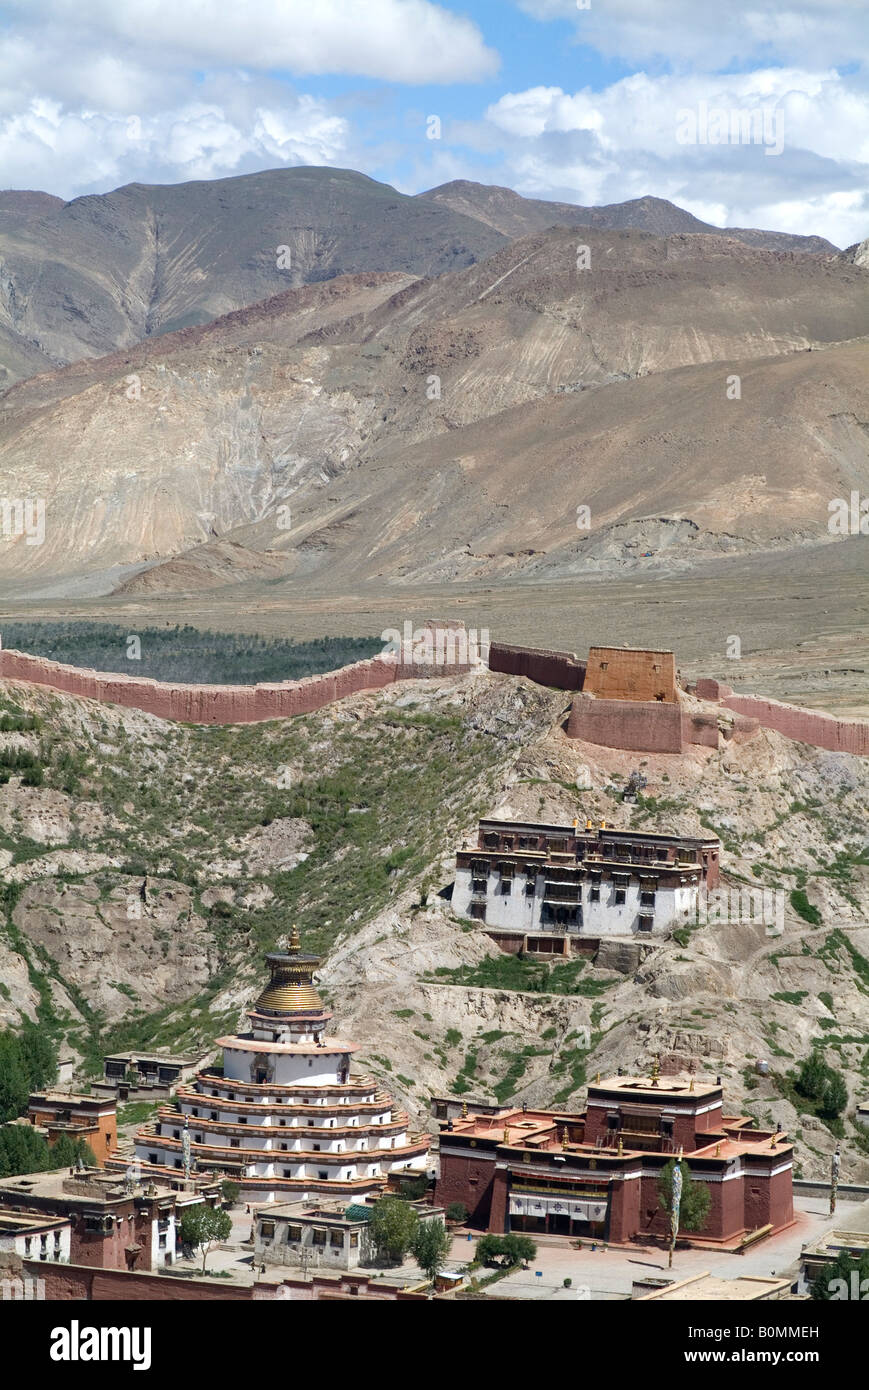 View from the Fort over Gyantse, Kumbum in the distance, Tibet, China. - Stock Image